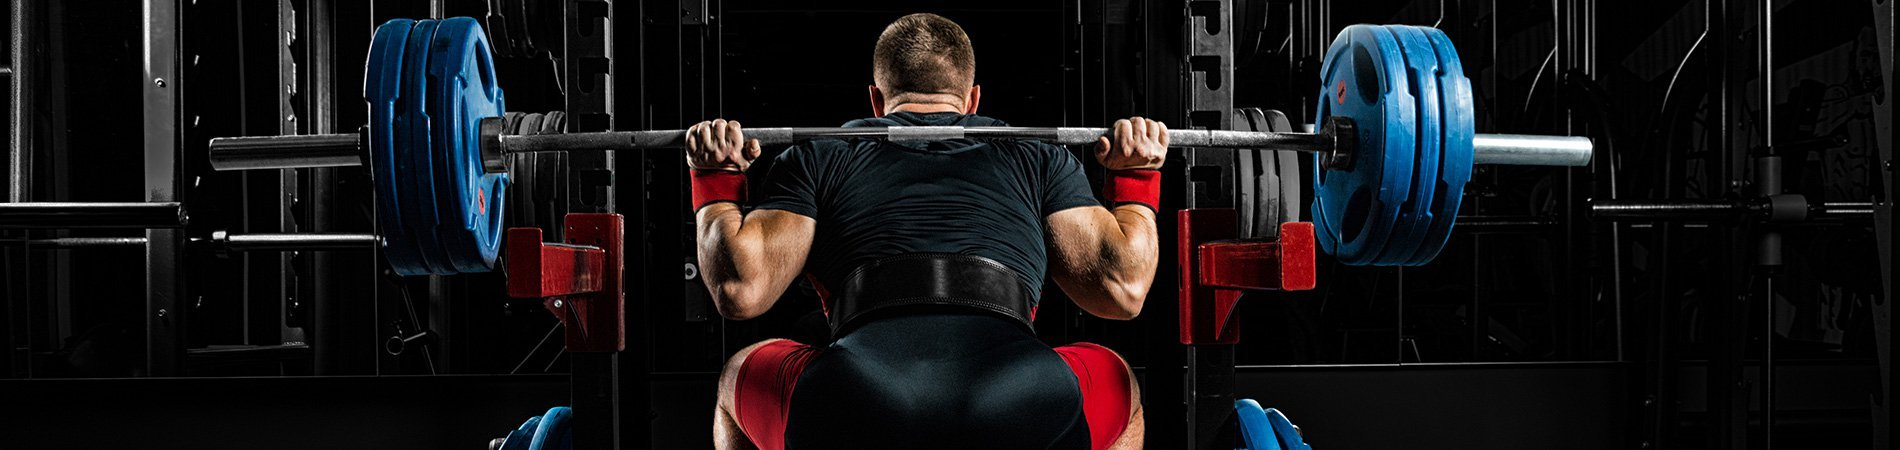 Squats vs  Leg Press (Side-by-Side Exercise Comparison